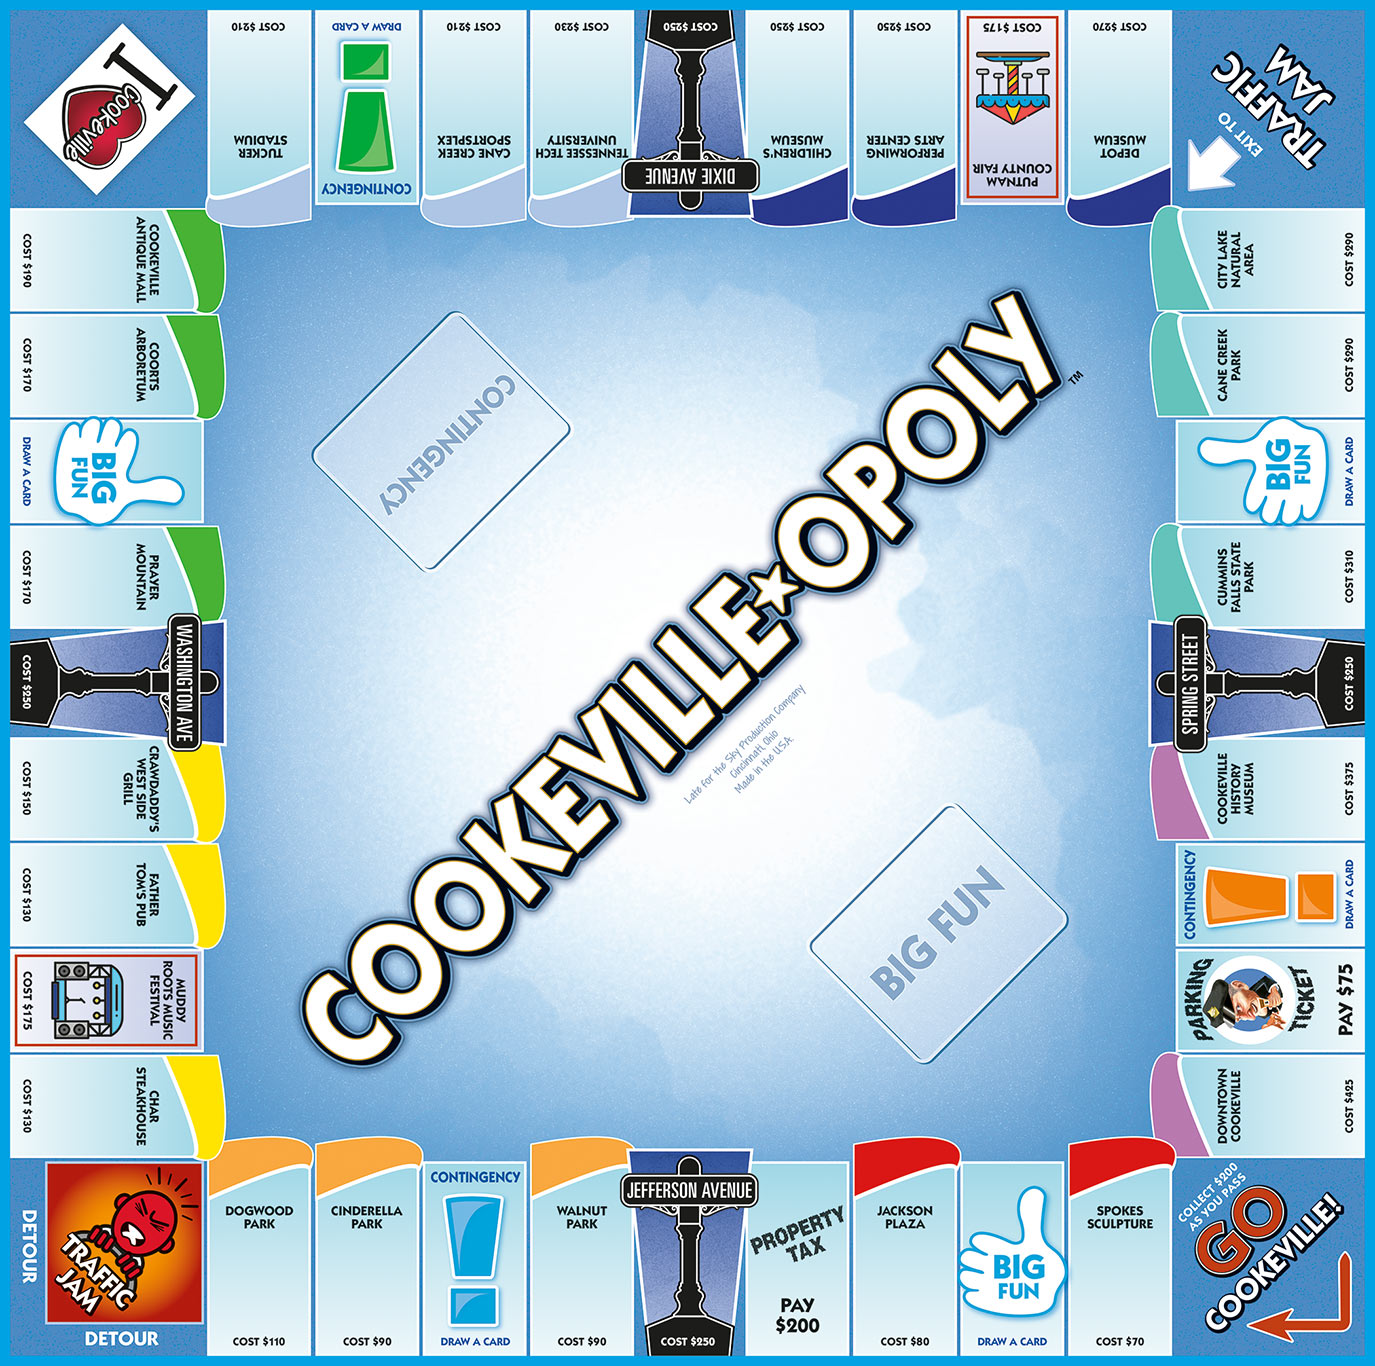 COOKEVILLE-OPOLY Board Game